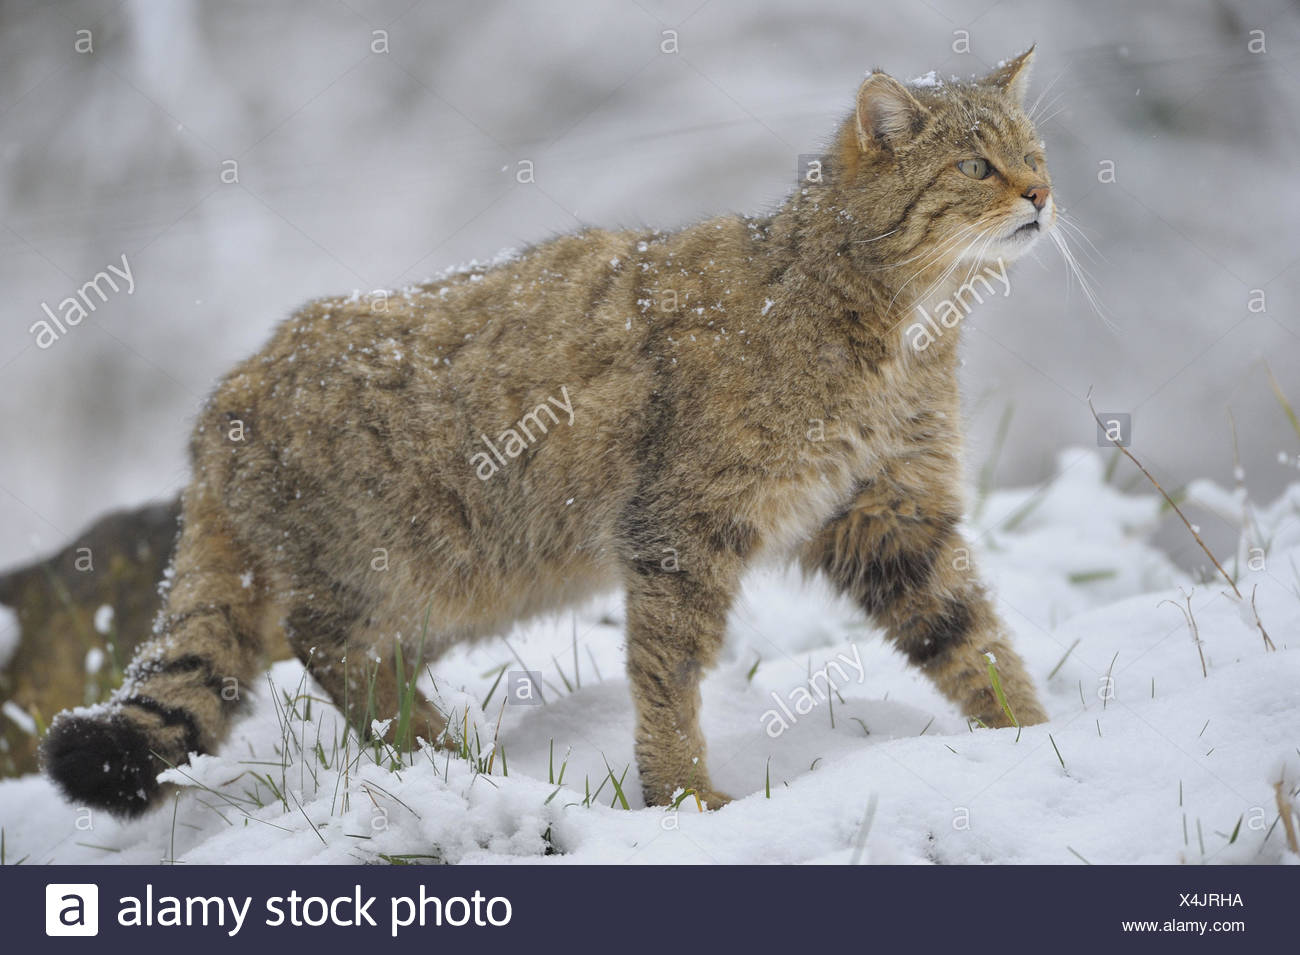 Central European wildcat, Felis silvestris, silvestris, winter, zoo, game park, animals, wild animals, mammals, predators, cat, run, stalk, season, wintry, snow, threatens, whole body, side view, nature, Wildlife, outside, - Stock Image